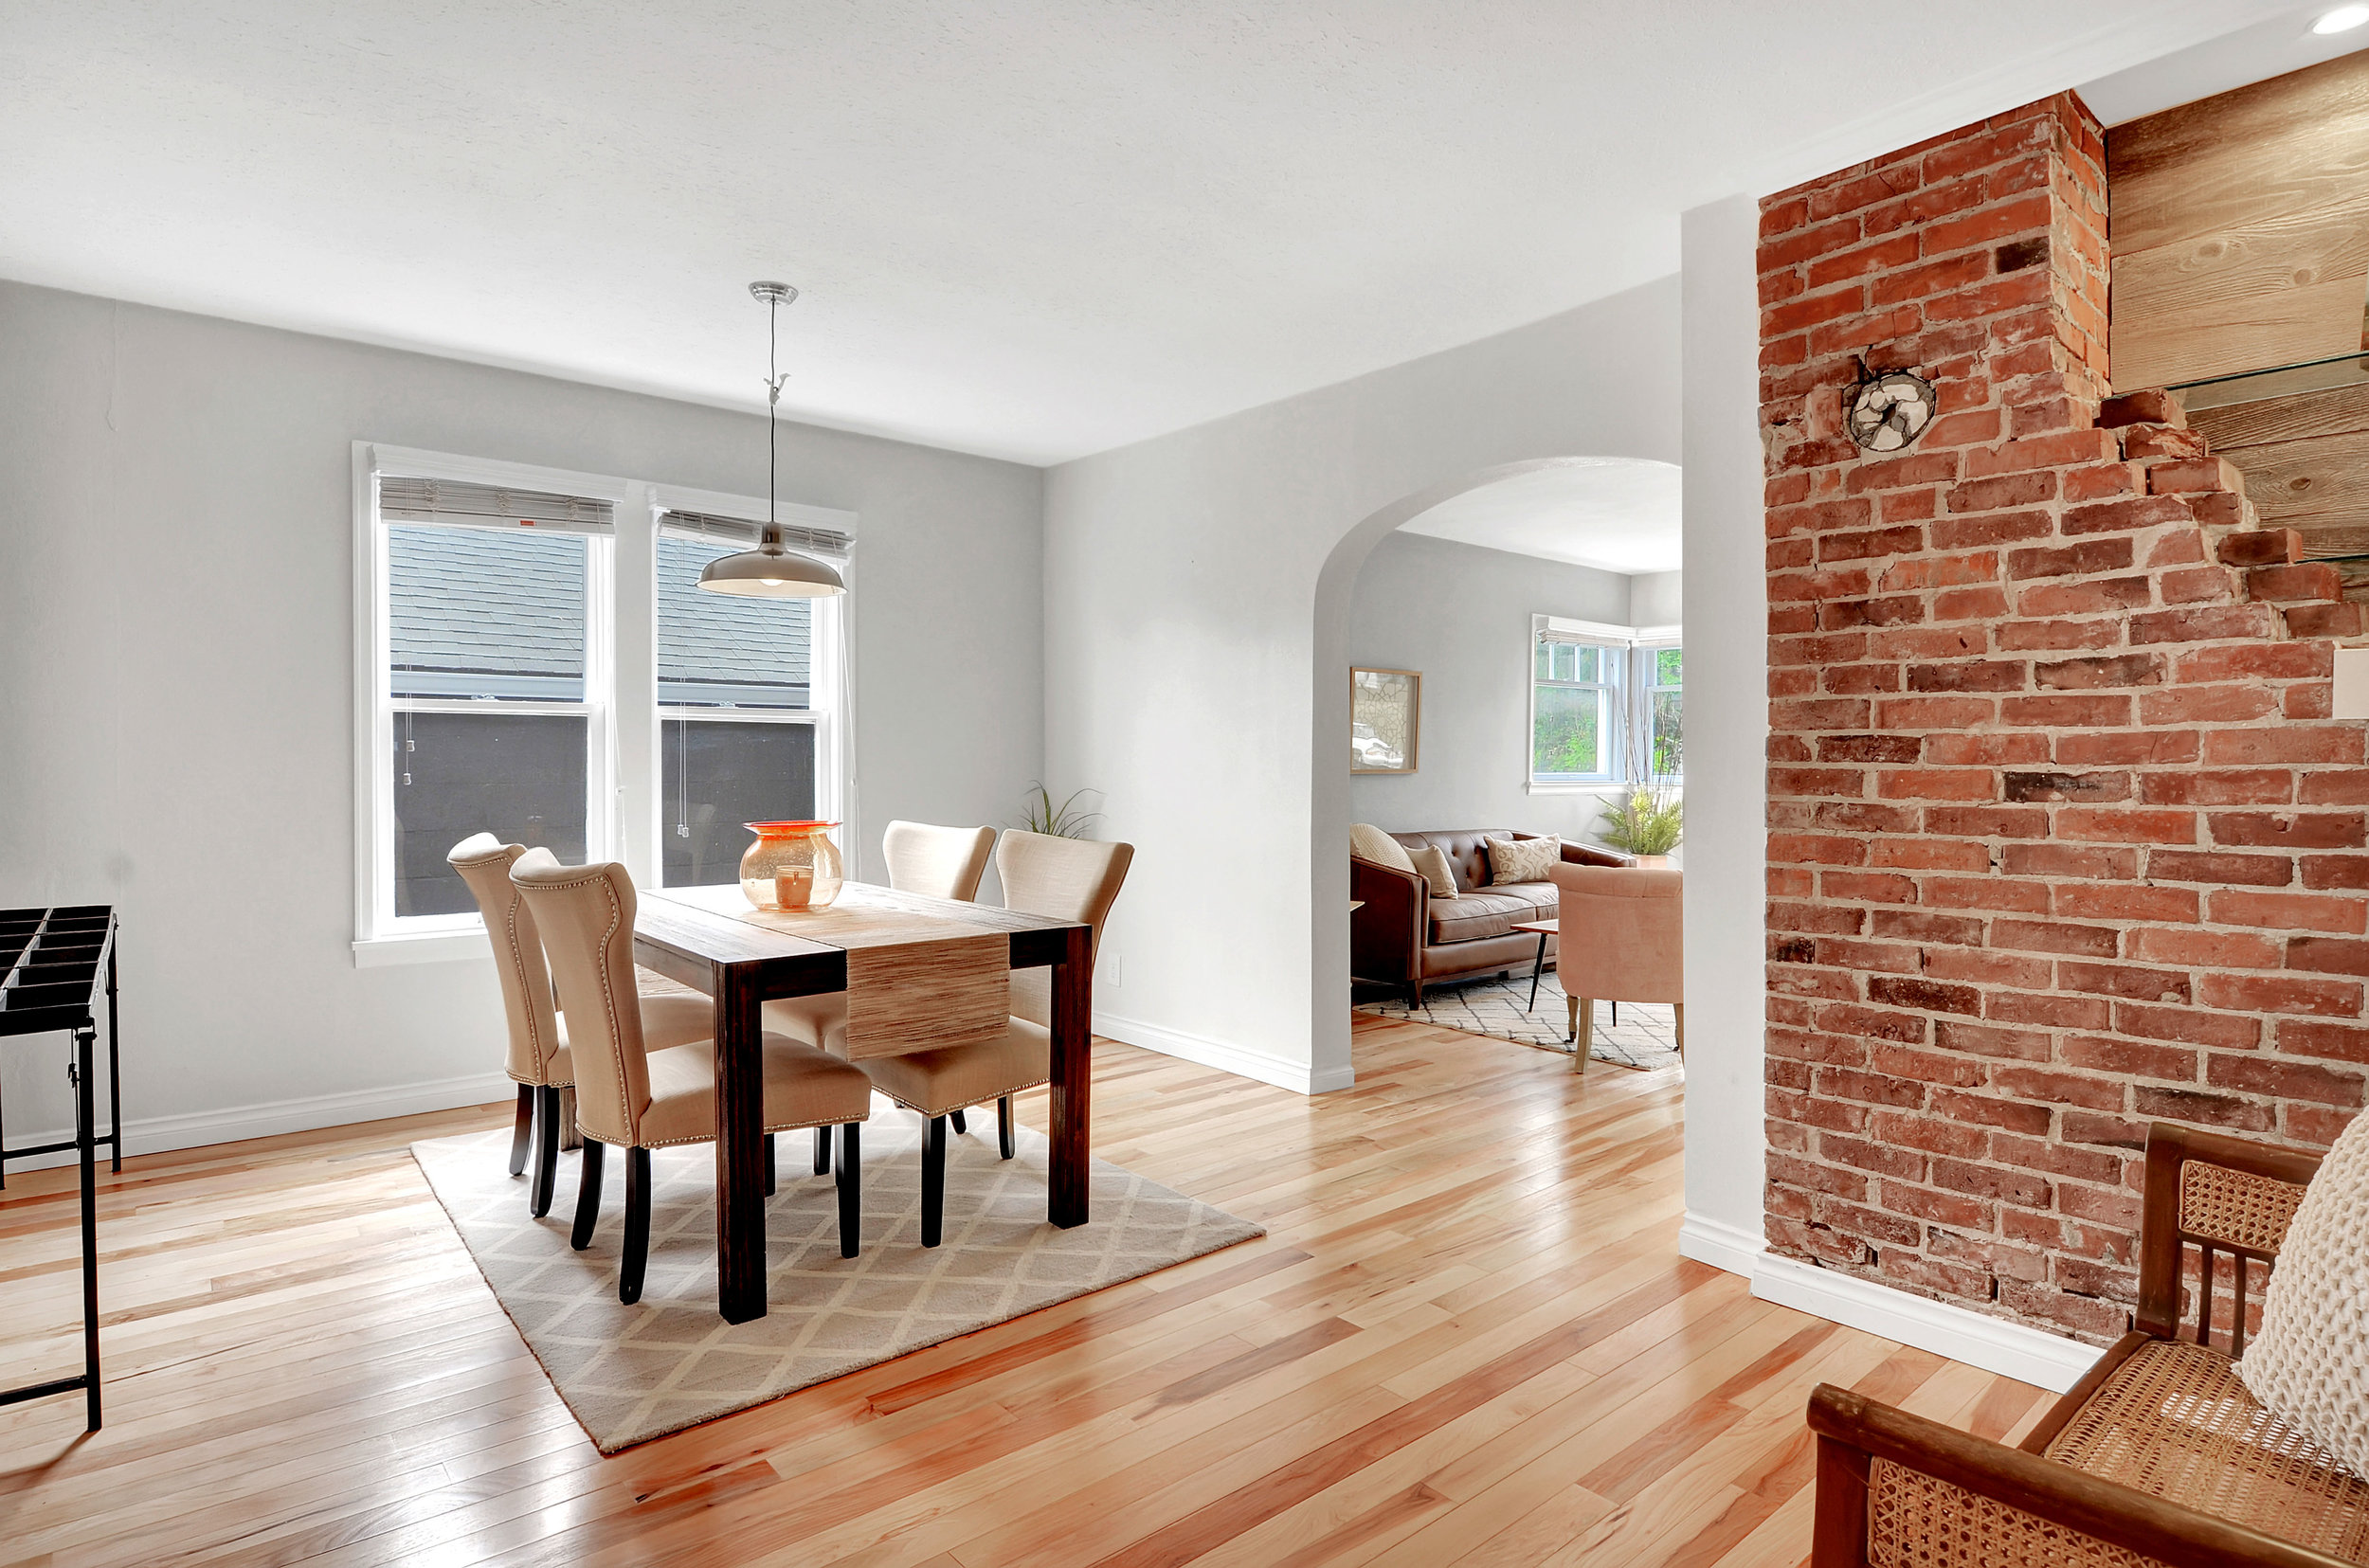 There's plenty of texture and interest in this dining room with the exposed brick, graceful archway, and rustic planking on the wall. Set up candles and a mini bar display on the the chimney back.